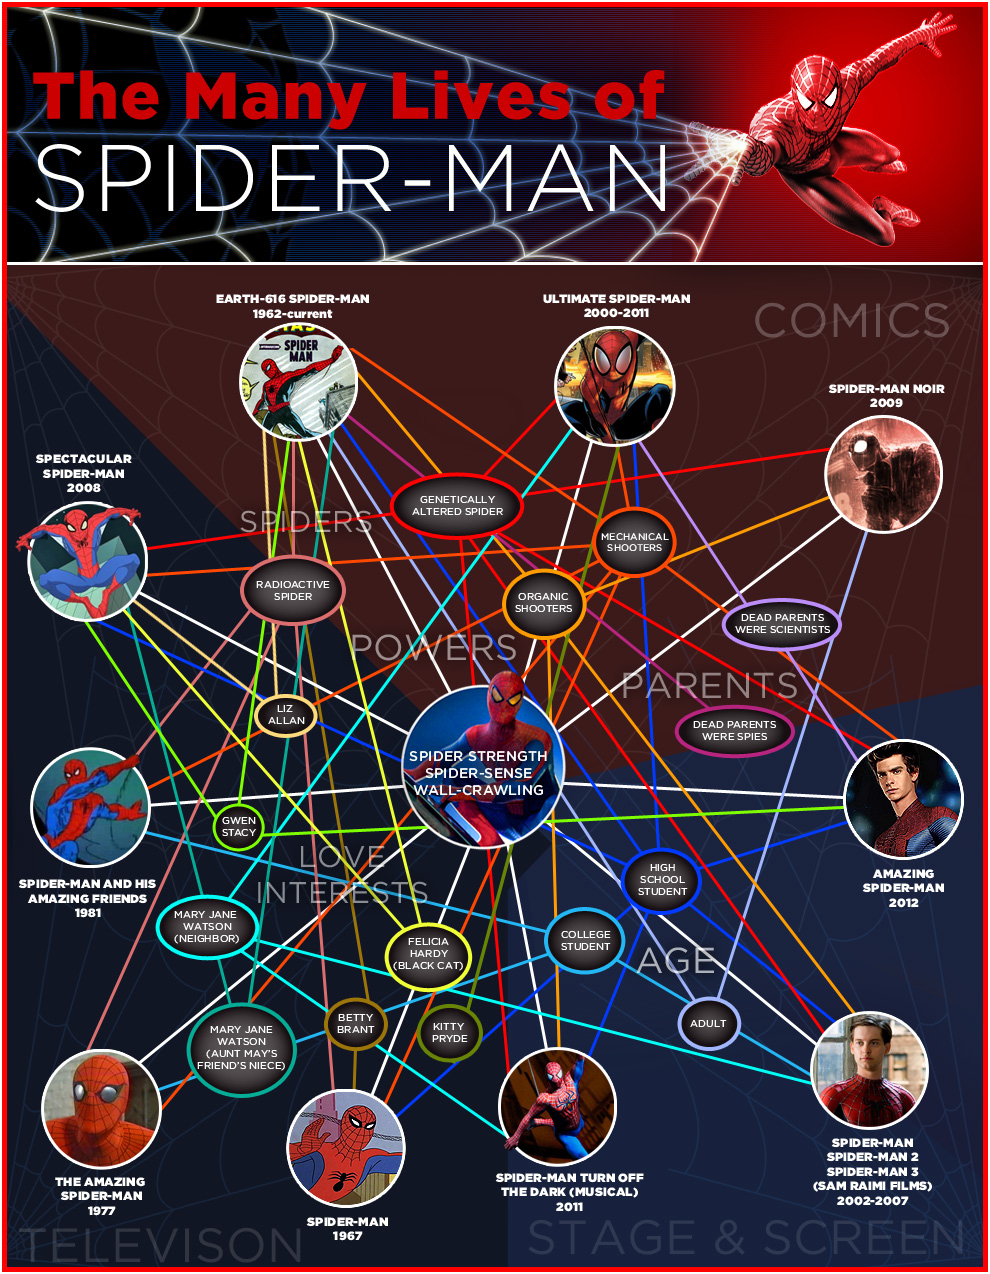 The Lives Of Spiderman-Infographic